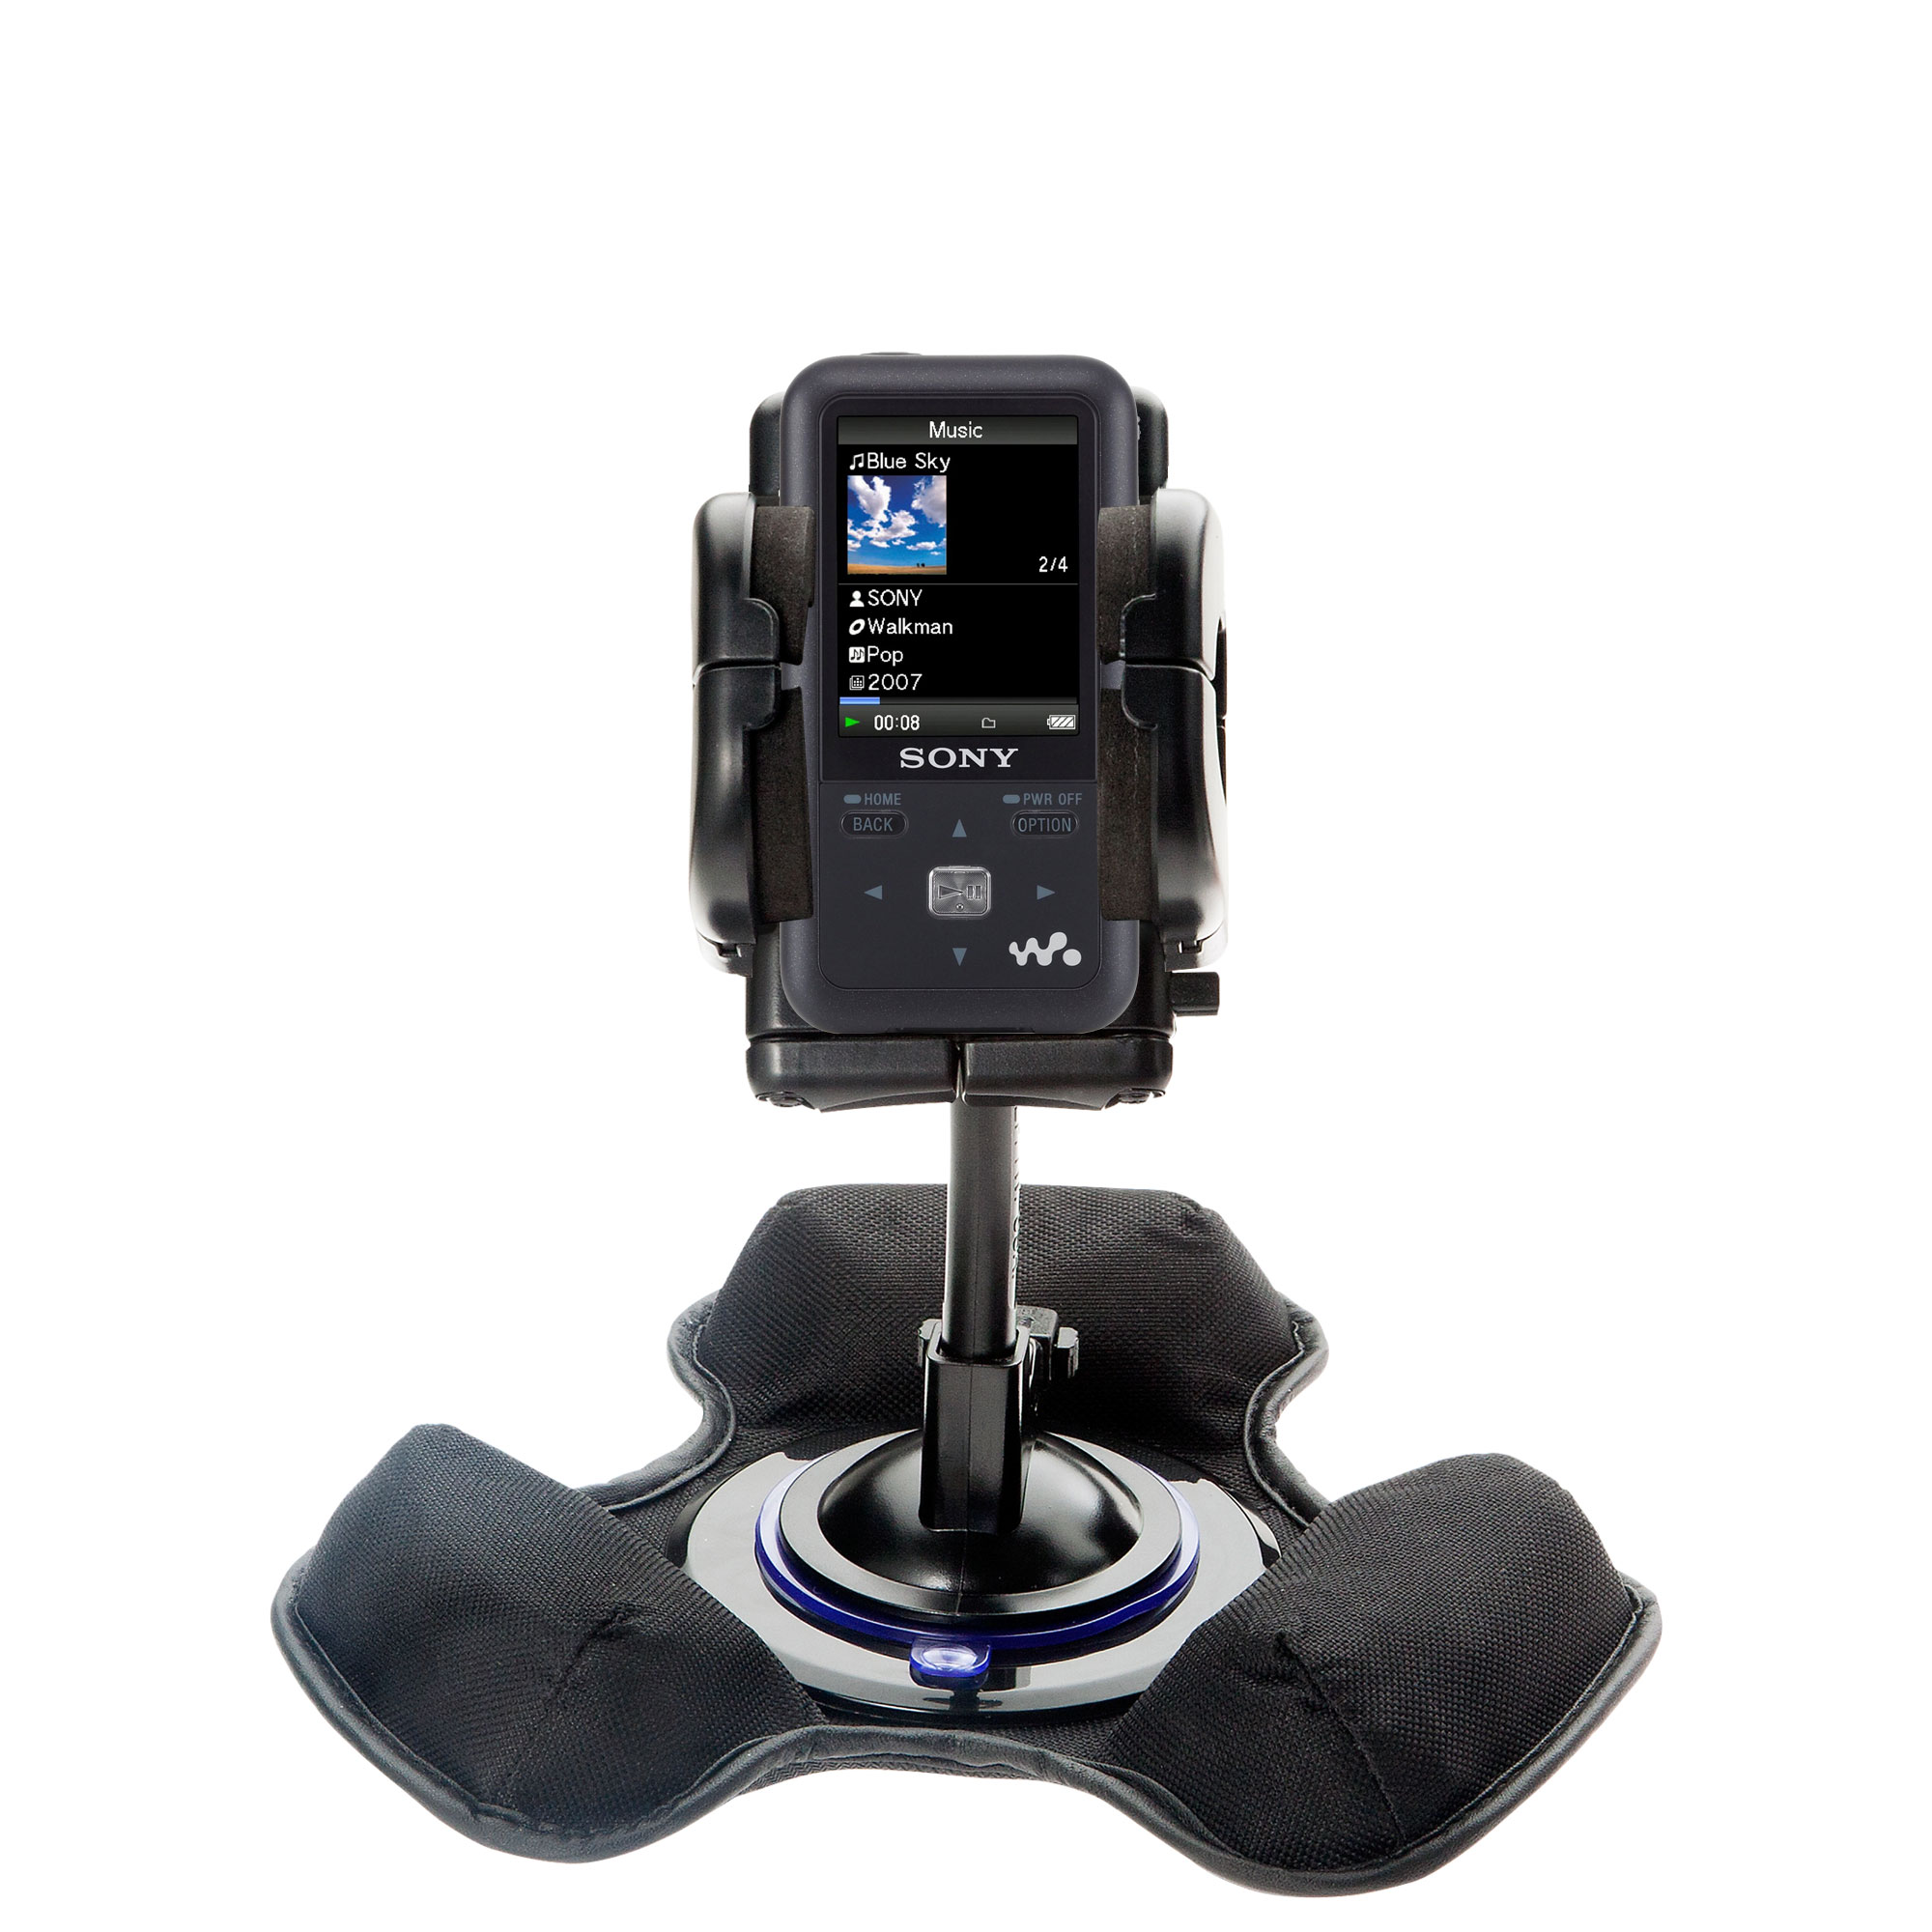 Dash and Windshield Holder compatible with the Sony Walkman NWZ-S616